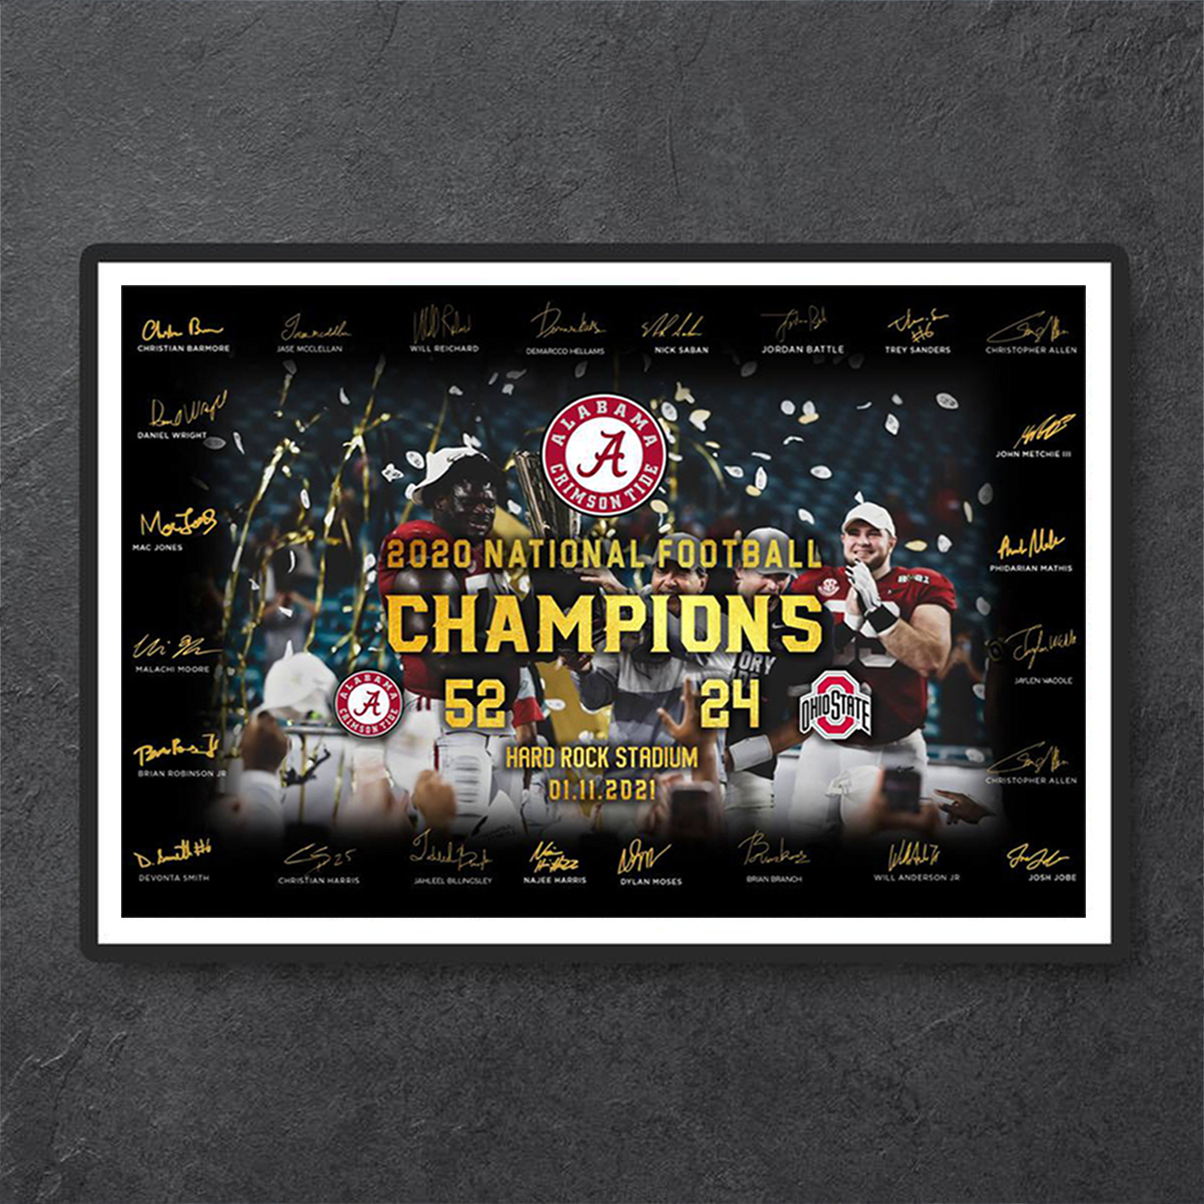 Alabama crimson tide 2020 national football champion poster A3